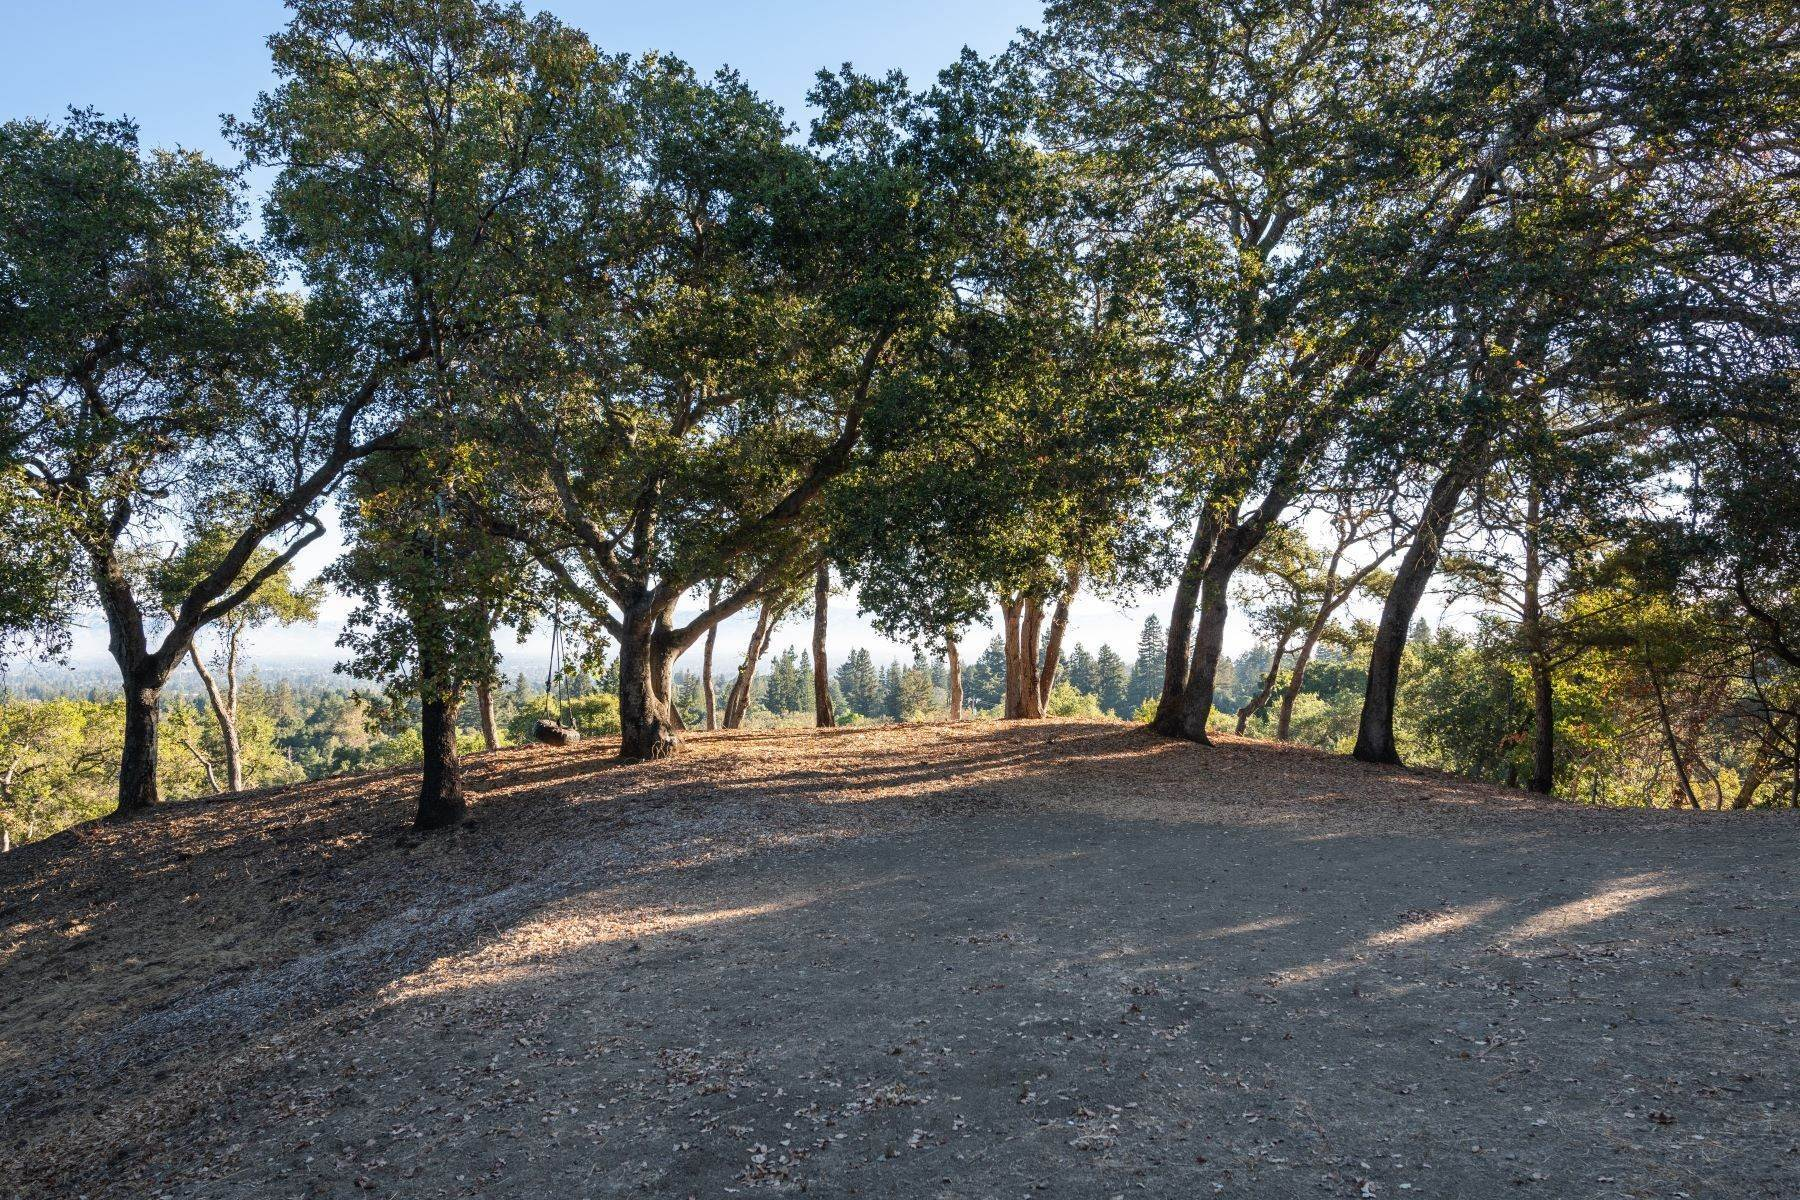 4. Land for Sale at 15400 Madrone Hill Road, Saratoga 15400 Madrone Hill Road Saratoga, California 95070 United States